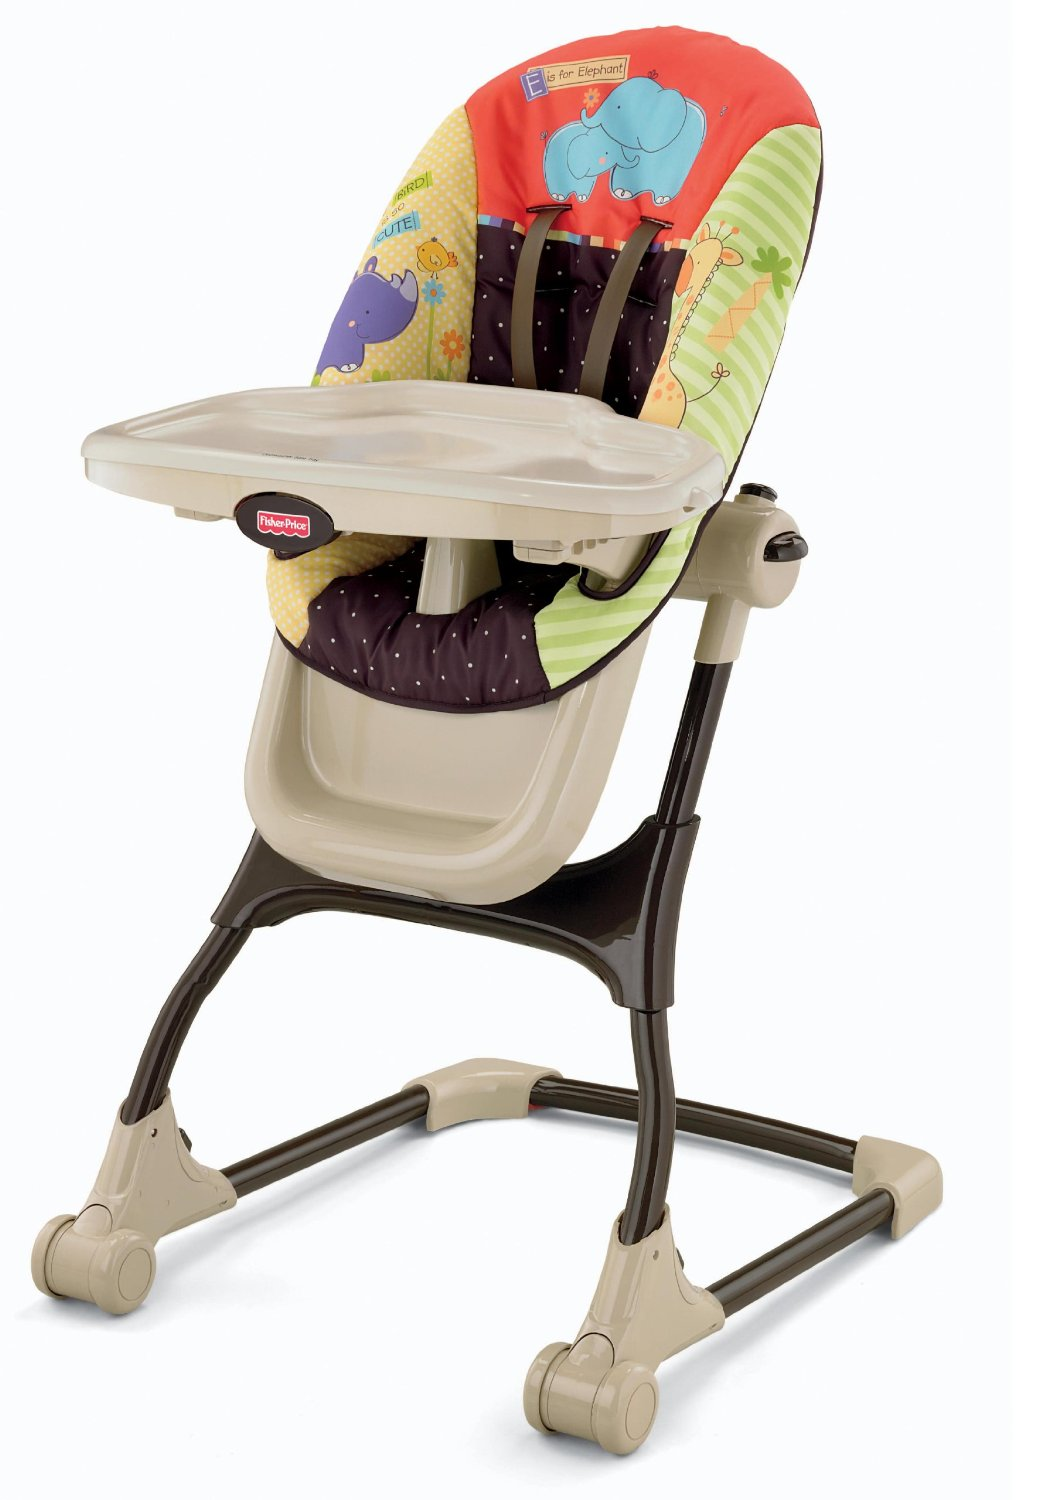 High Chair Deals Today Only 20 Off Select Fisher Price Baby Items Hot